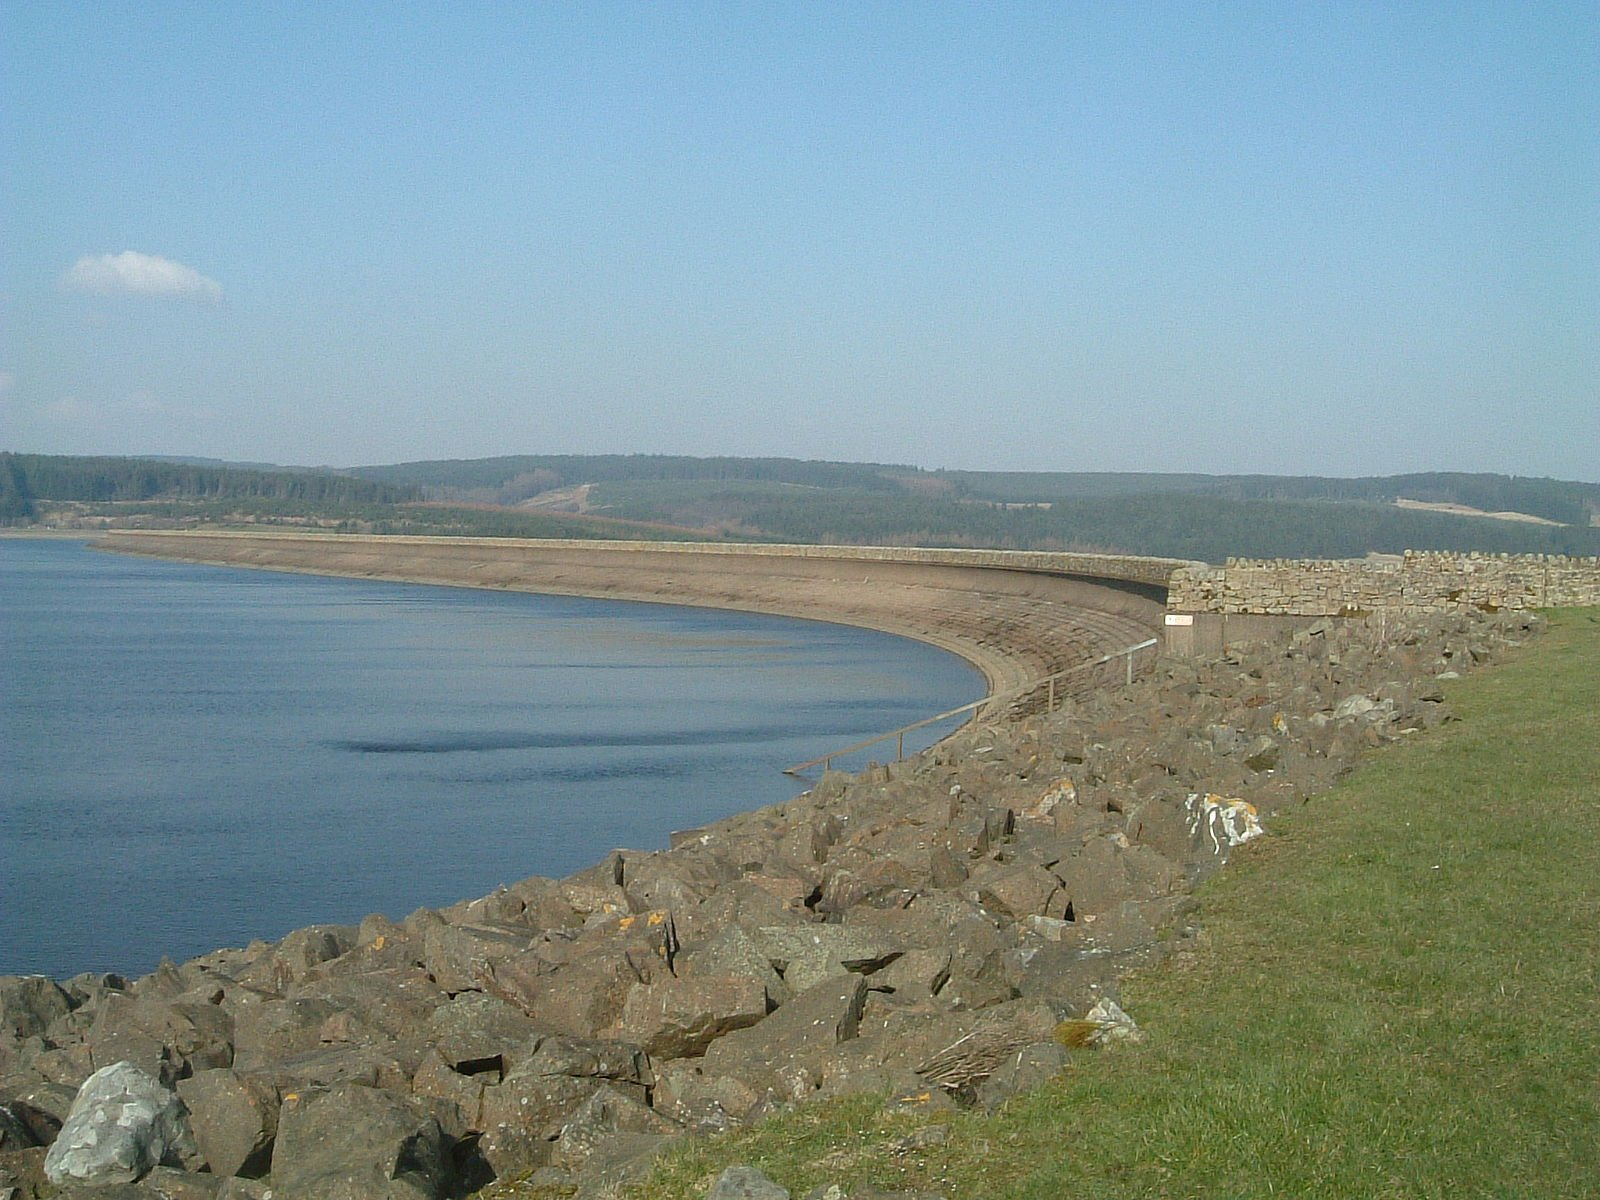 Kielder Dam and reservoir